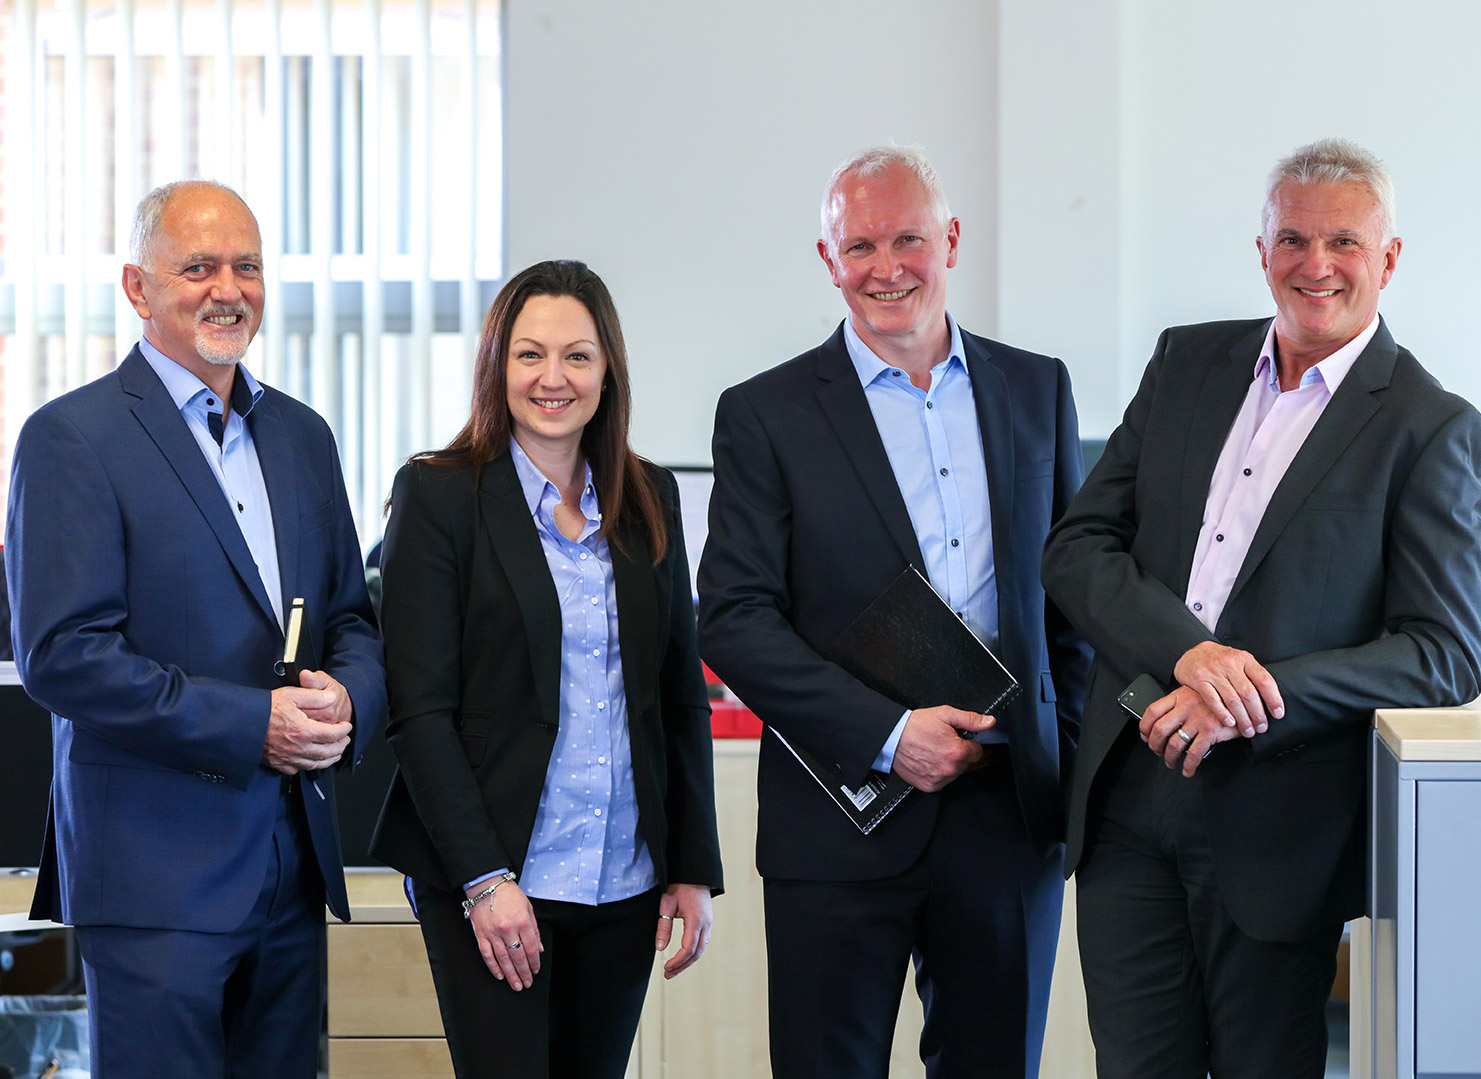 Partial management buyout led by directors Stephanie Barnett-Dean and Mark MacDonald (centre) Martyn Cashmore (far left) and Ken Amott (far right).